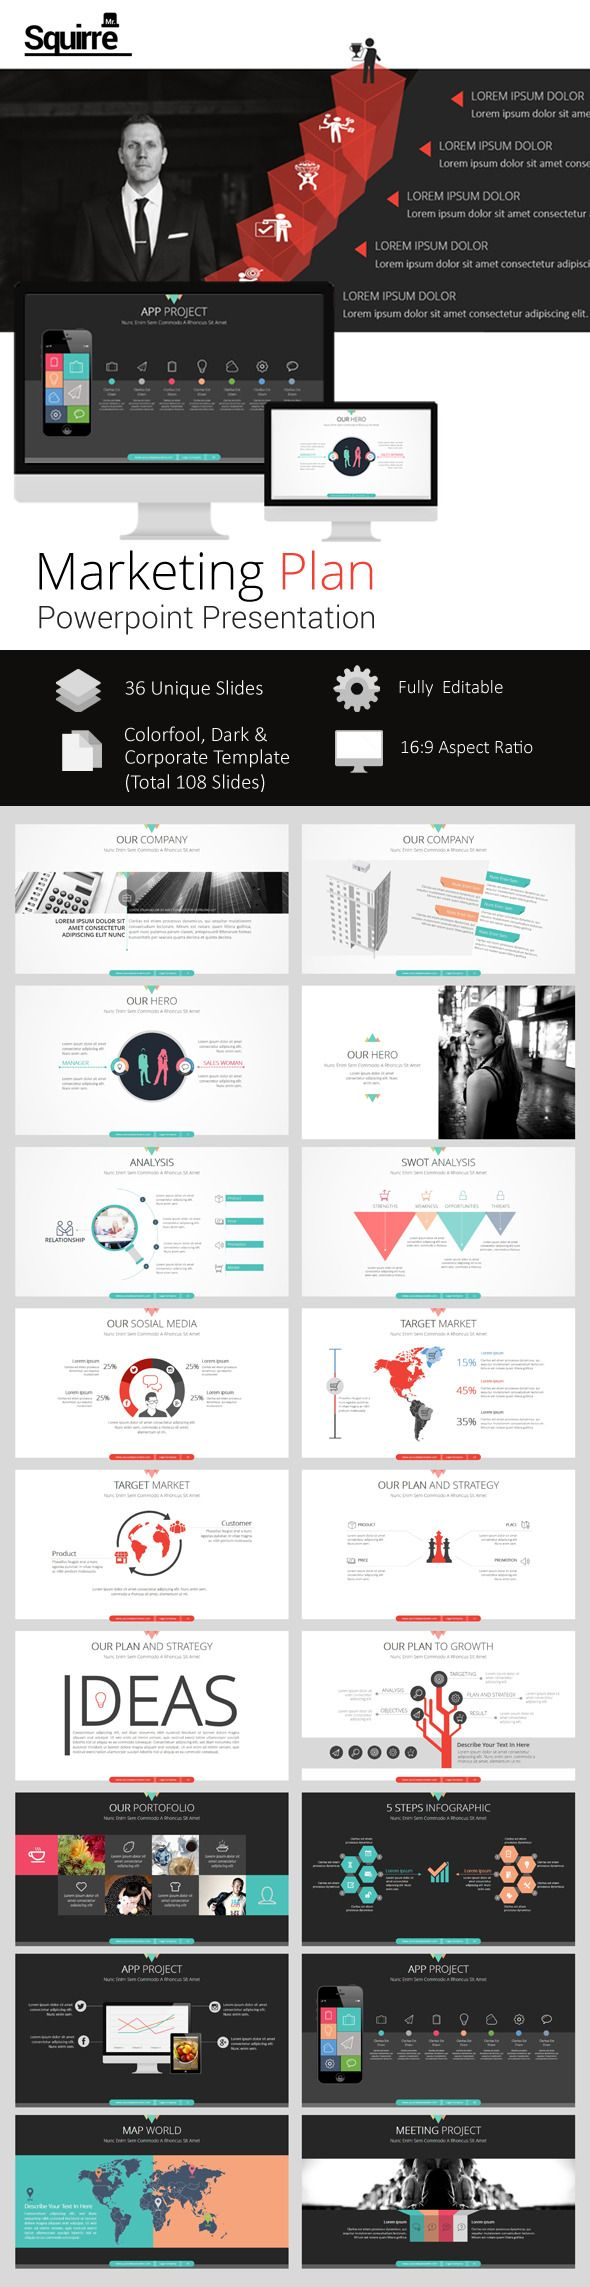 Marketing Plan Powerpoint Presentation Template #powerpoint #powerpointtemplate…